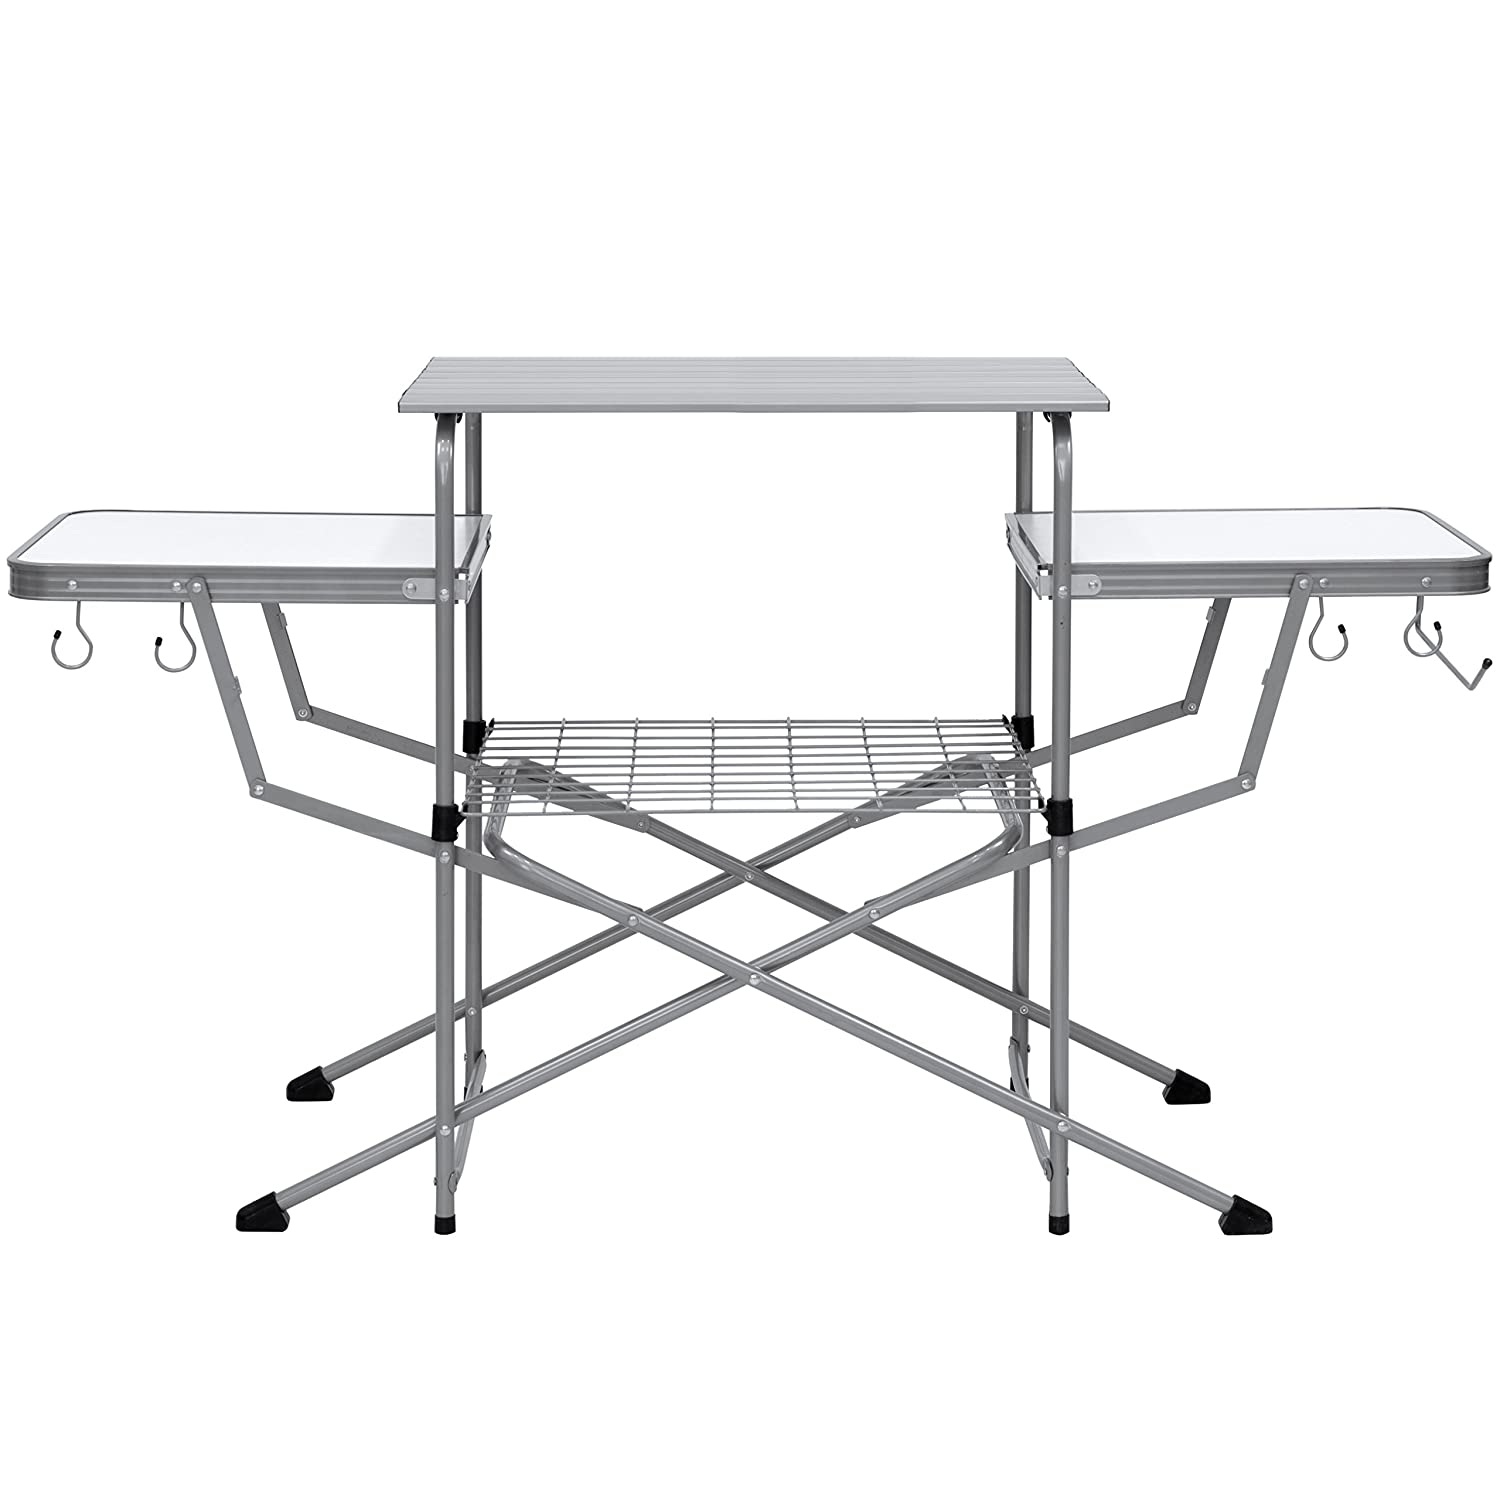 Best Choice Products Portable Outdoor Deluxe Folding Camping Grilling Table w Carrying Case – Silver